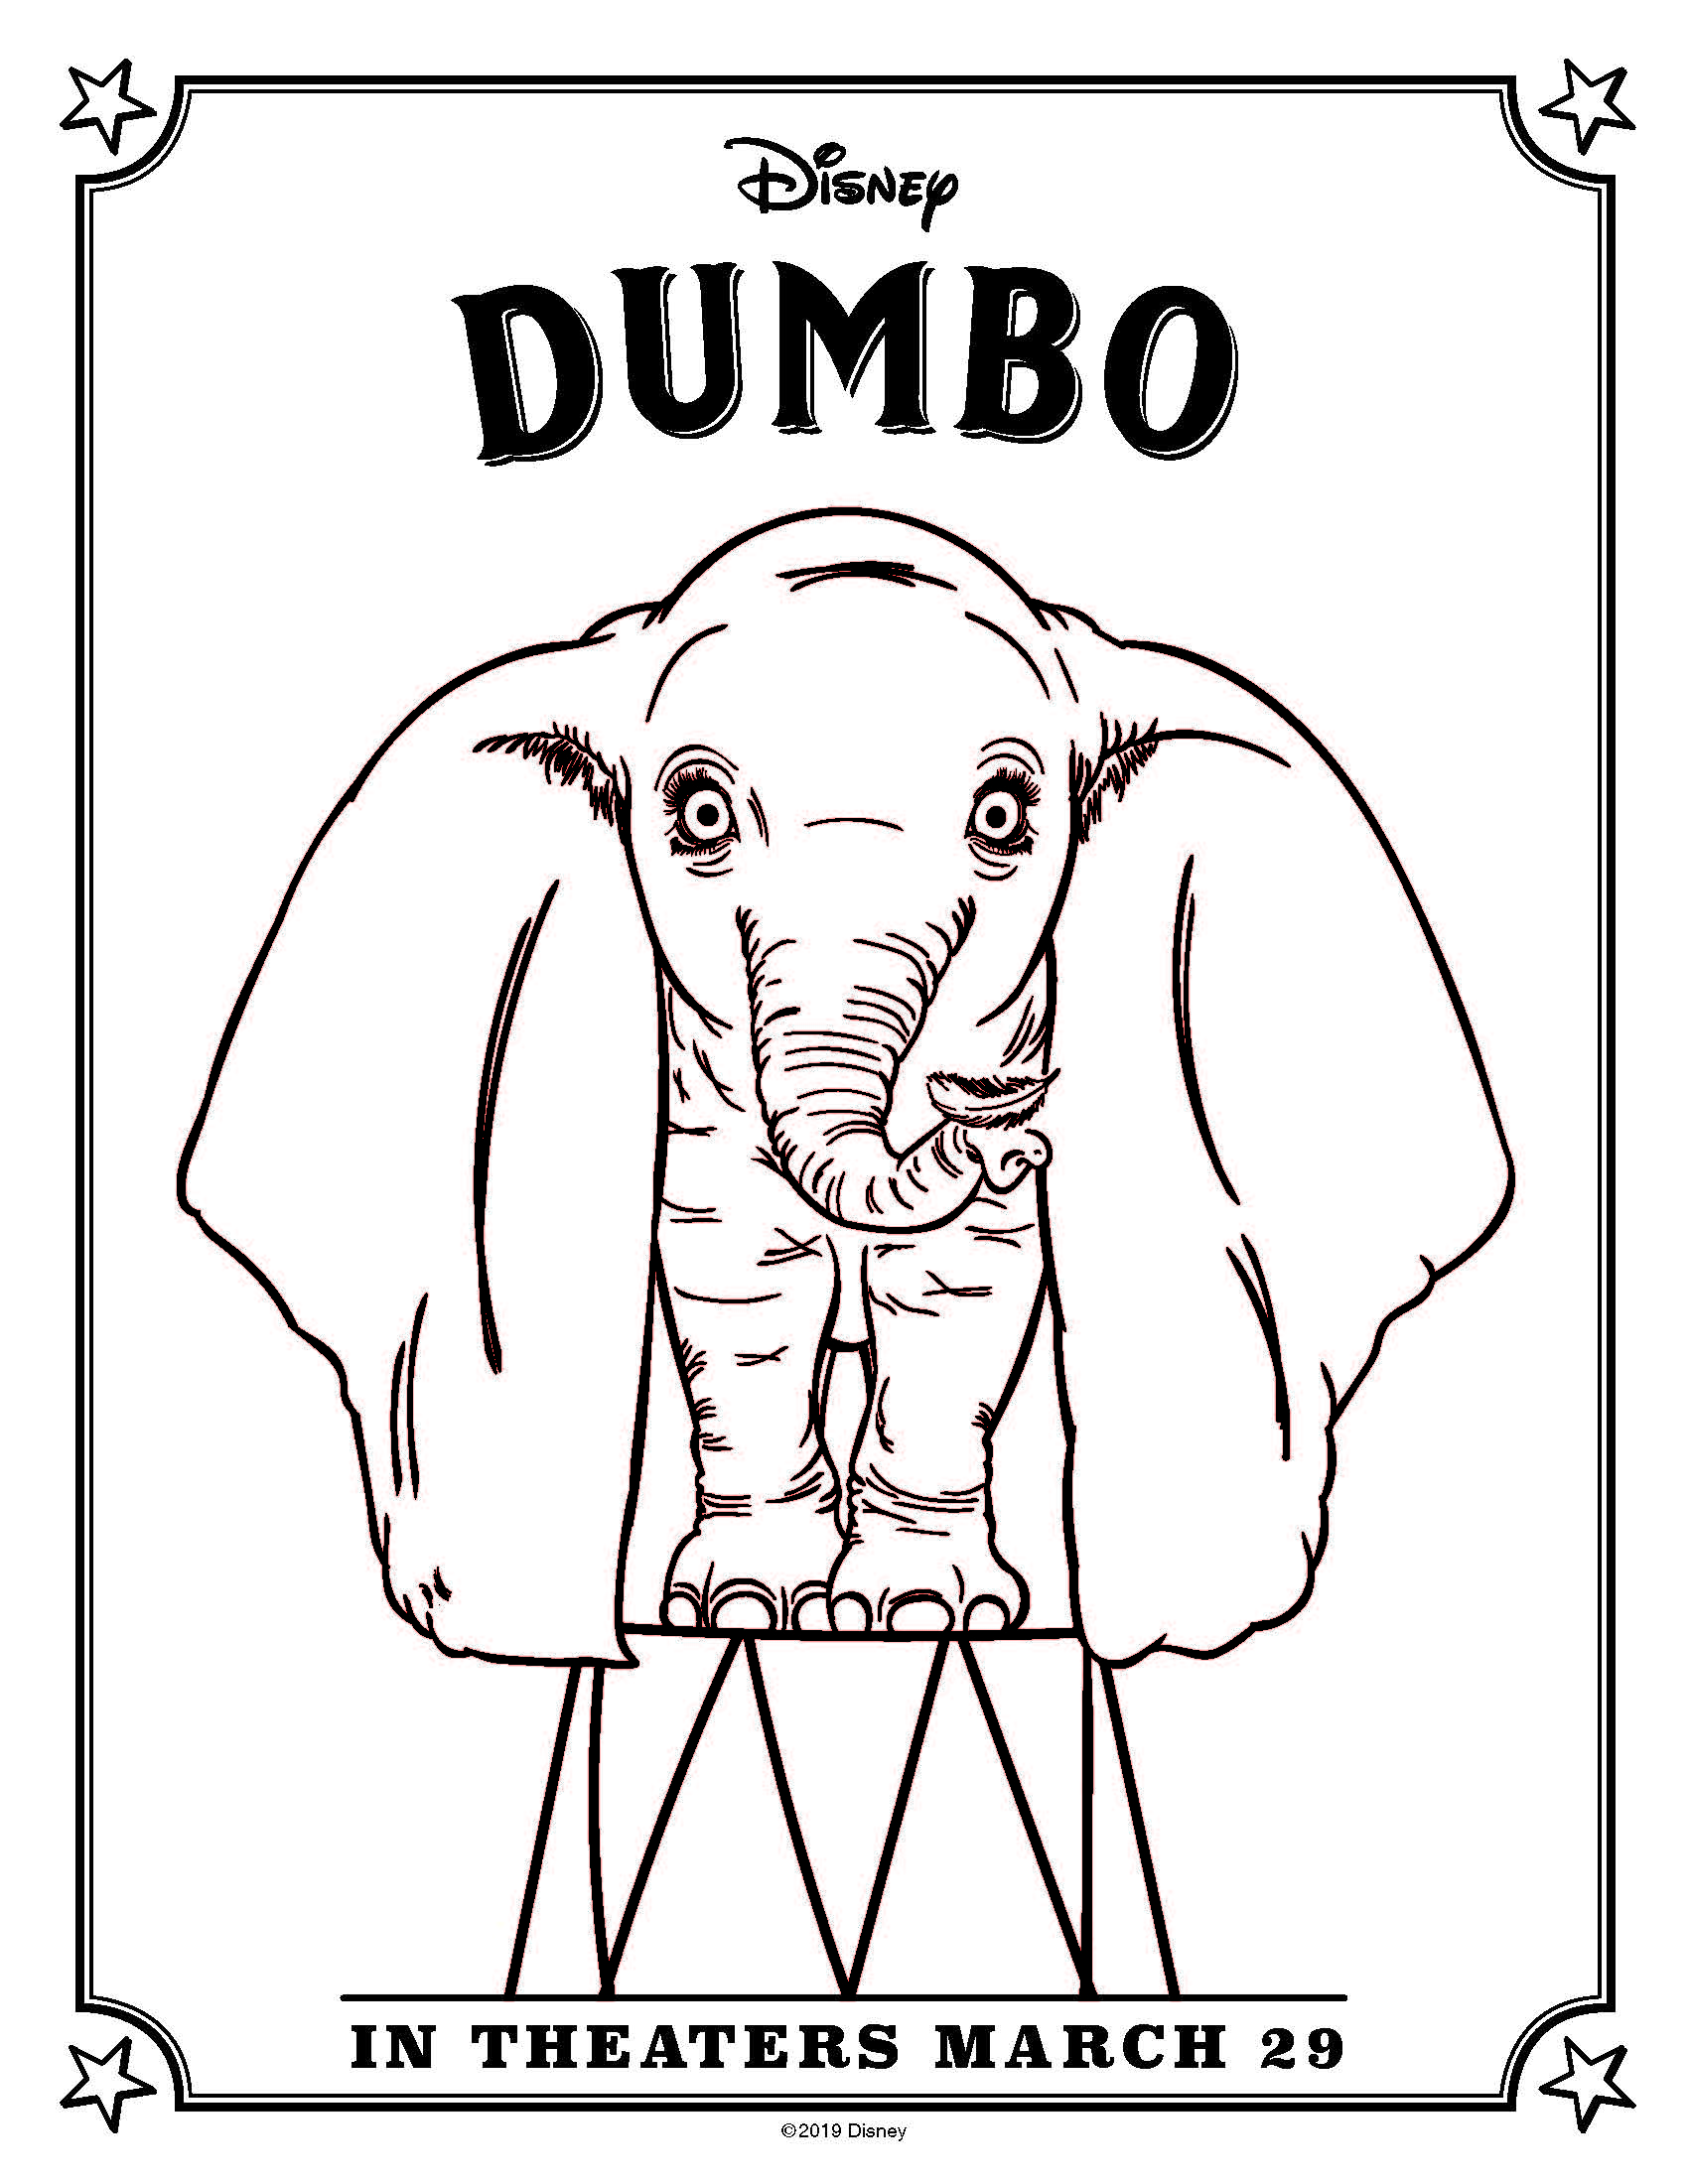 Live Action Dumbo Takes Flight Spoiler Free Review